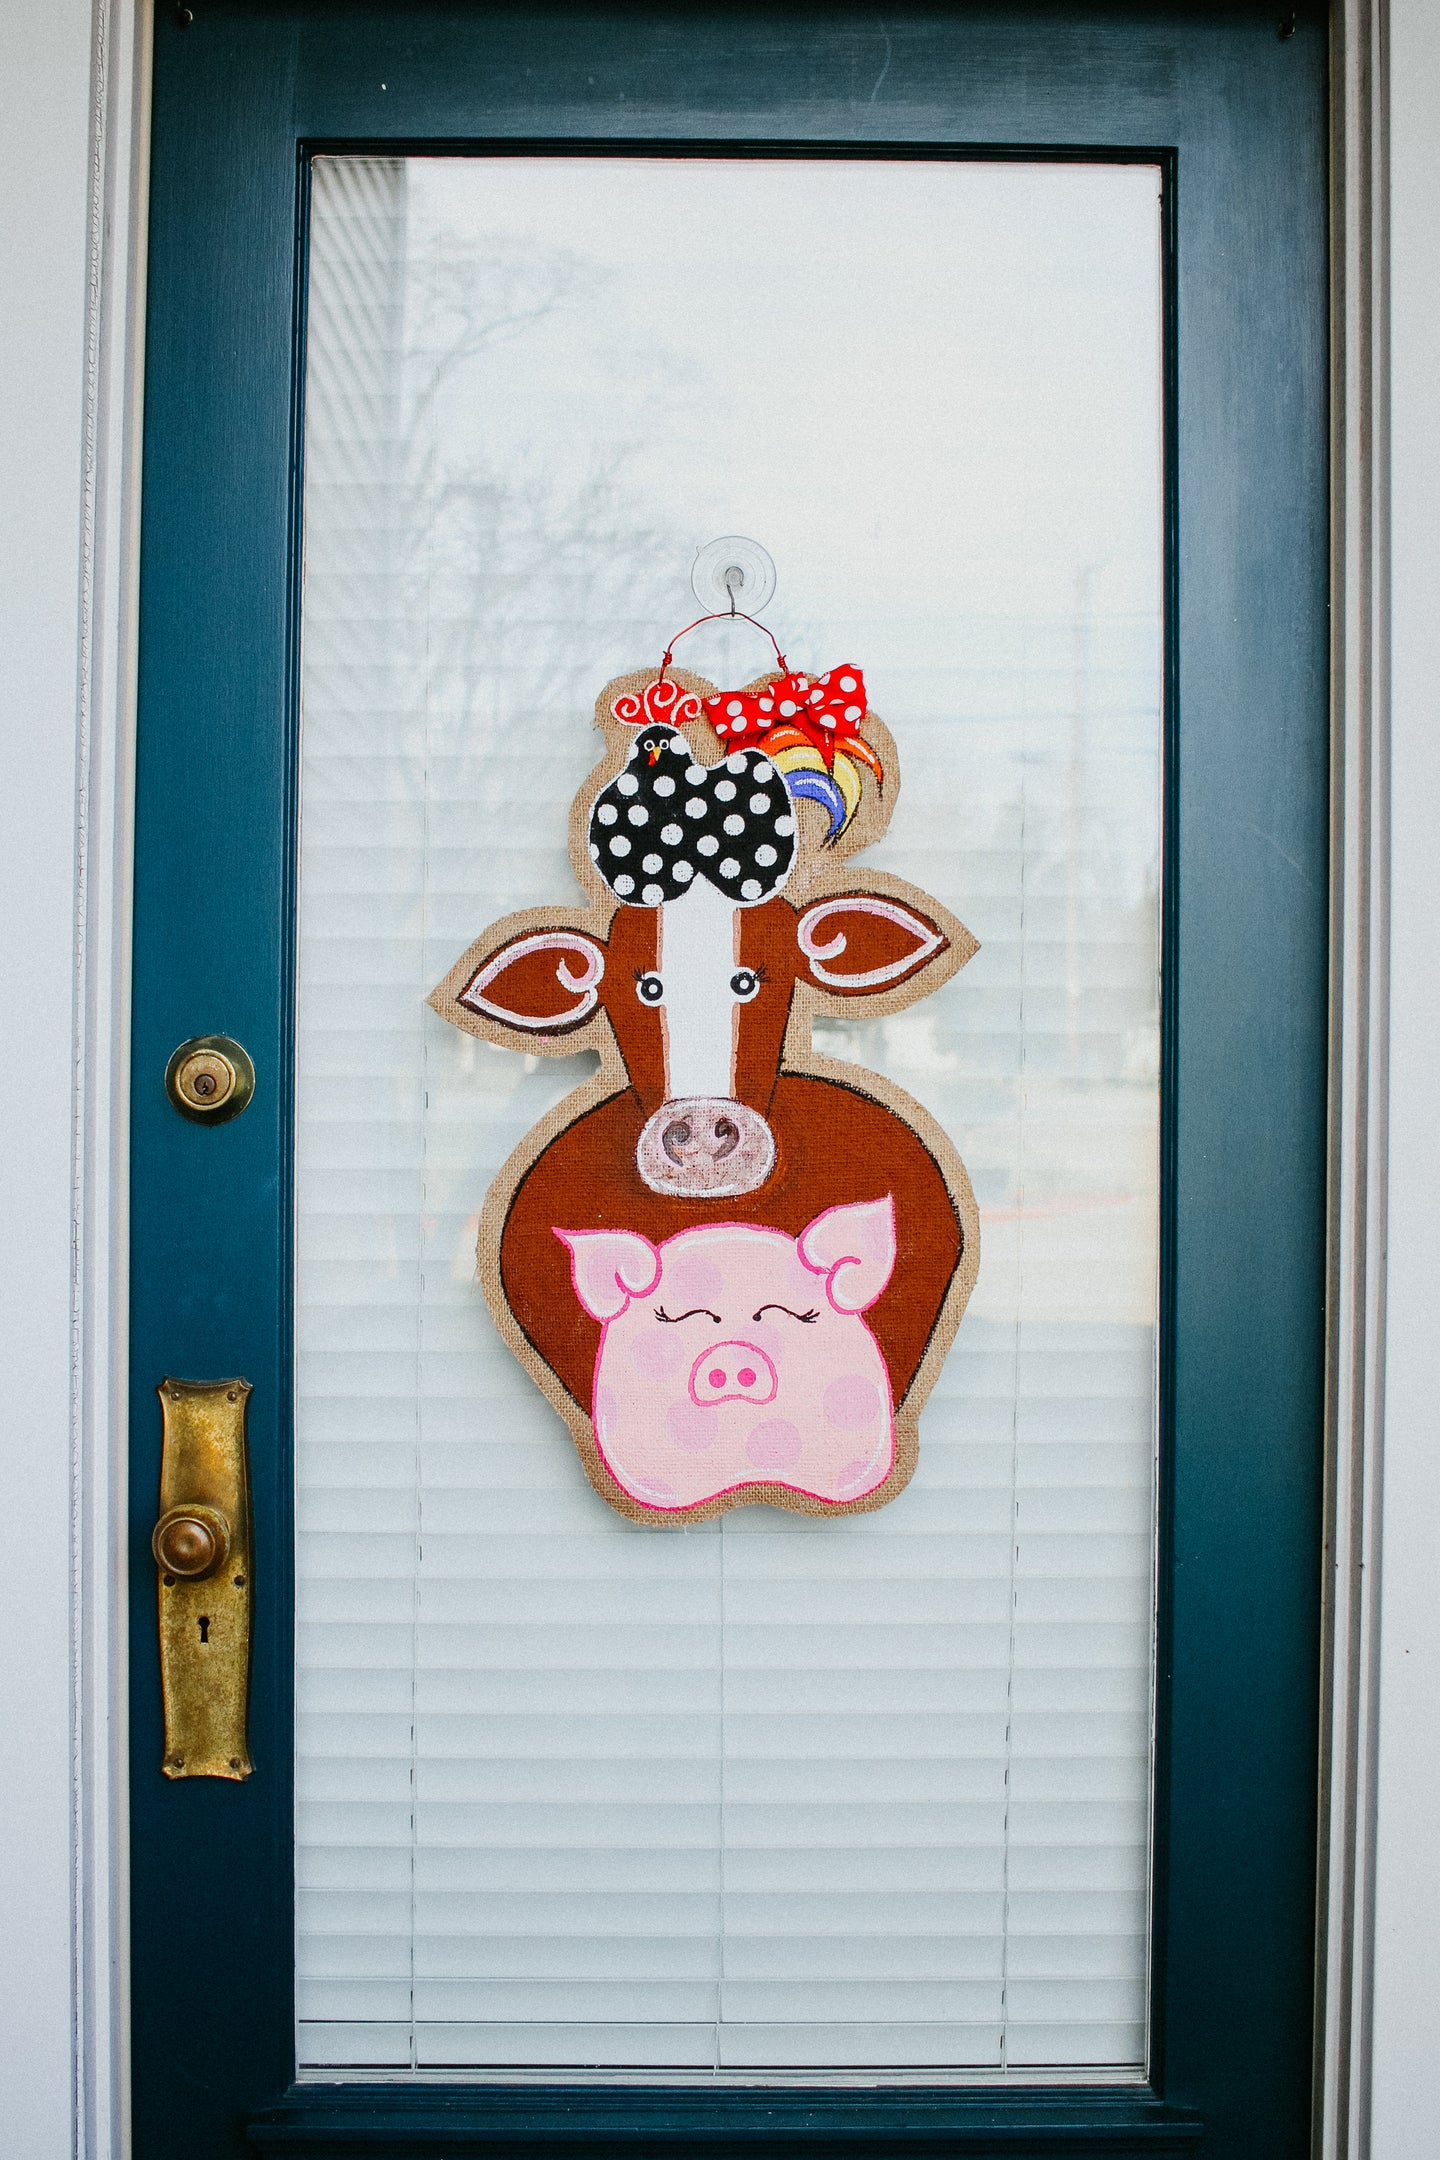 Chicken Pig Cow Door Hanger - DoorCandybyMeg Farm Animal Door Hanger